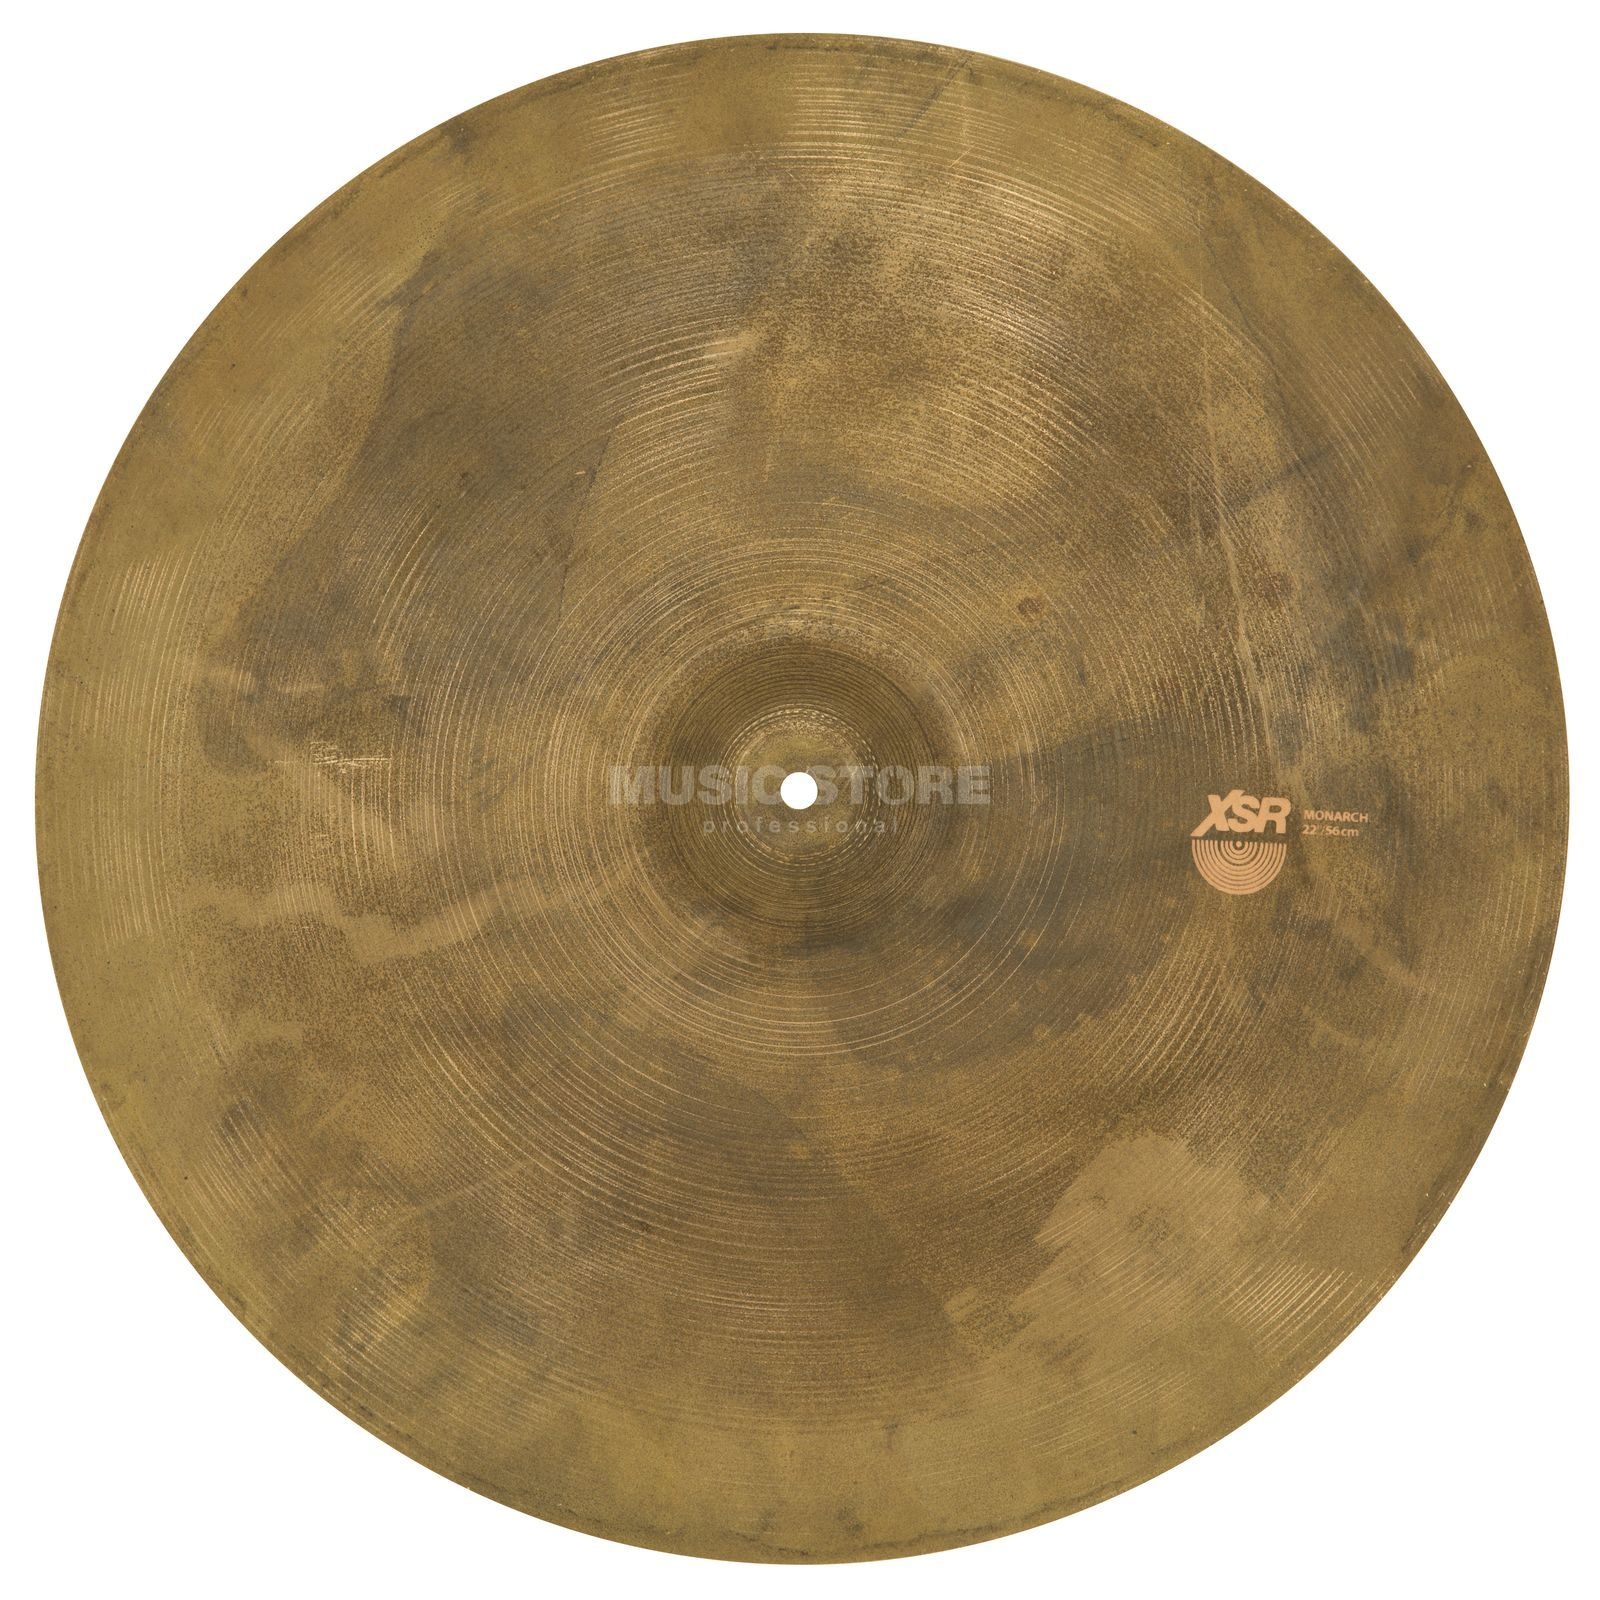 "Sabian XSR Monarch Ride 22"" Produktbild"